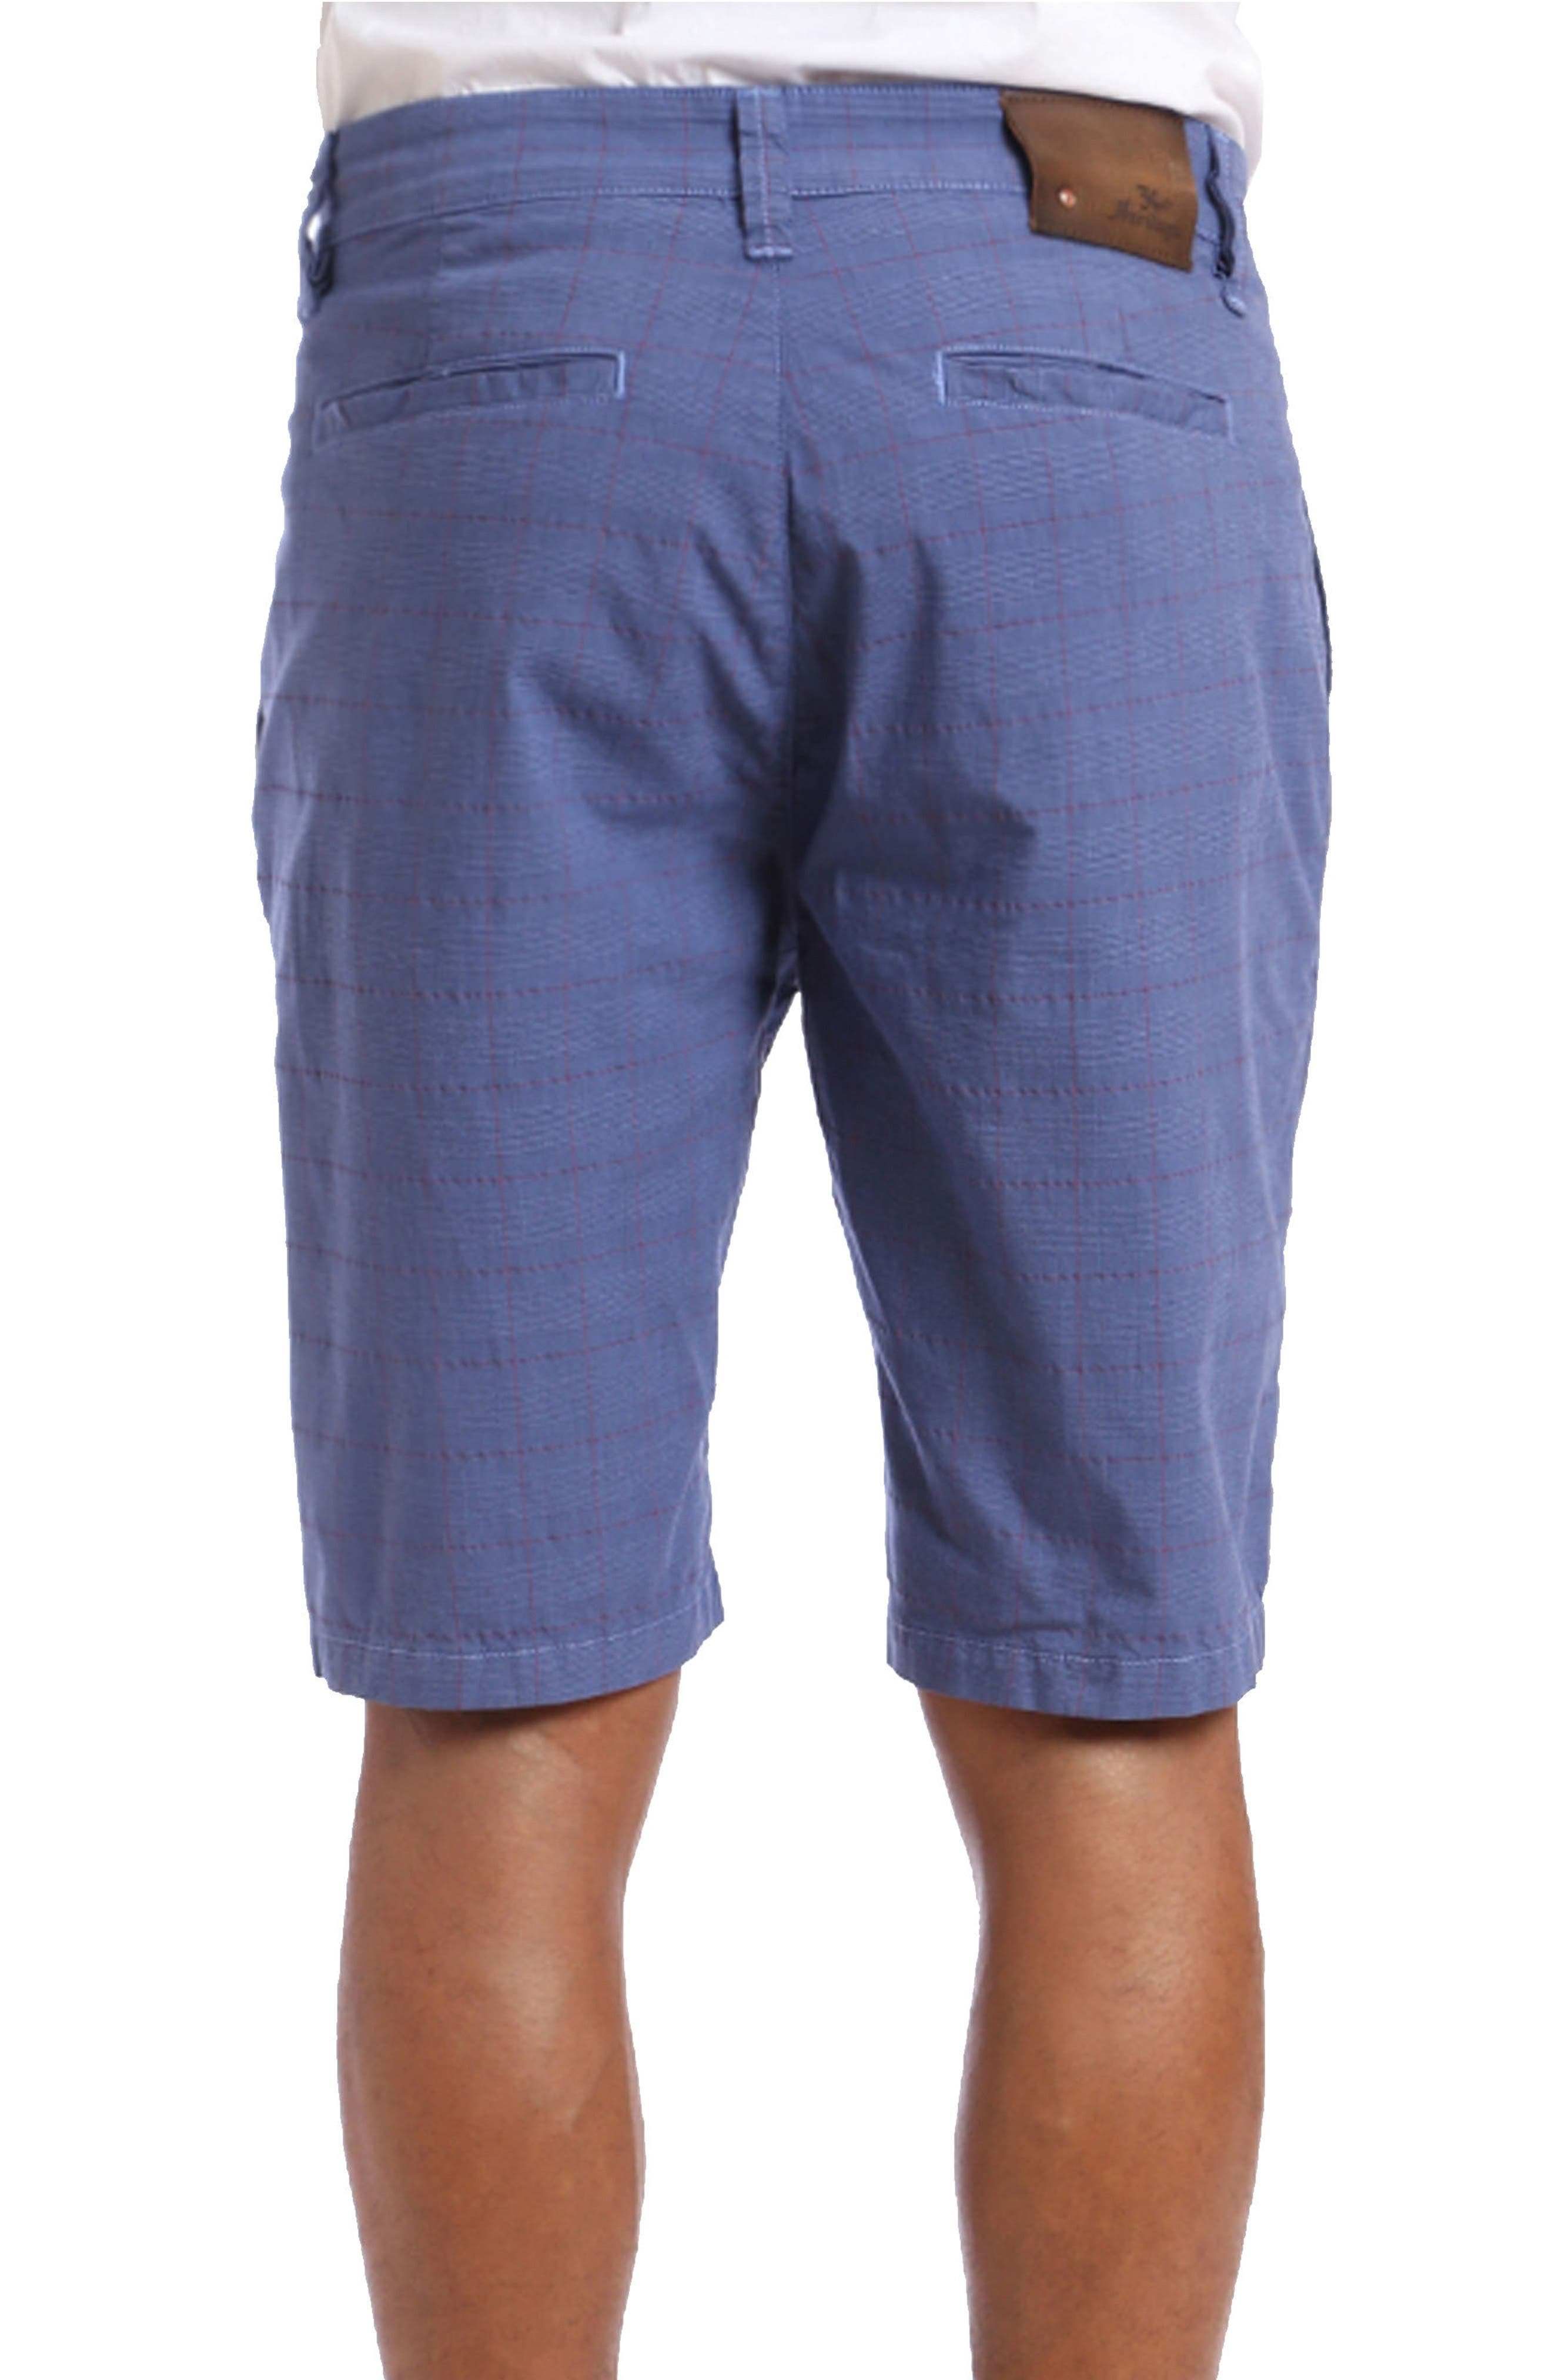 Nevada Twill Shorts,                             Alternate thumbnail 2, color,                             Indigo Plaid